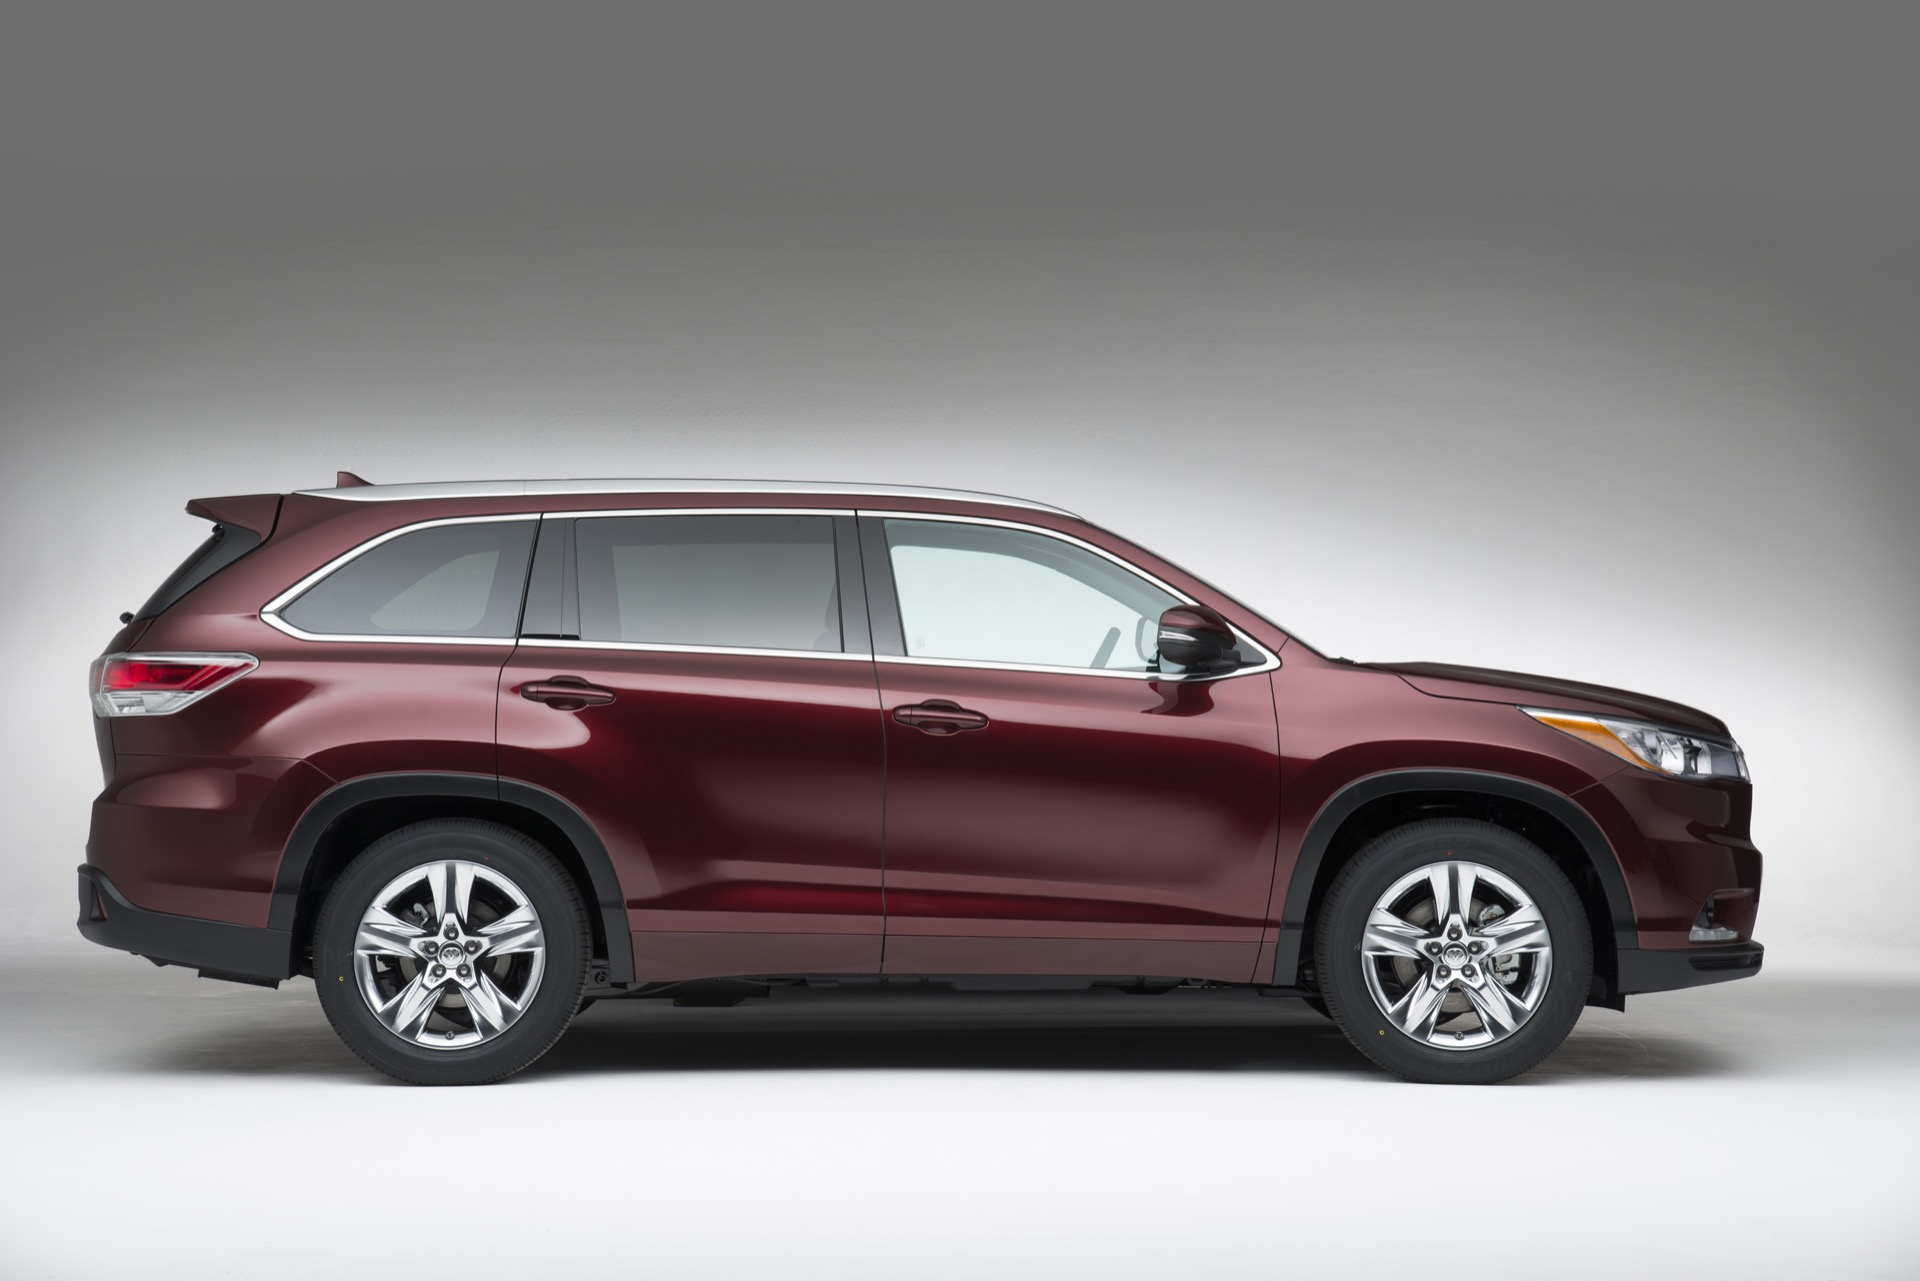 2016 Toyota Highlander Safety Review and Crash Test Ratings - The Car ...